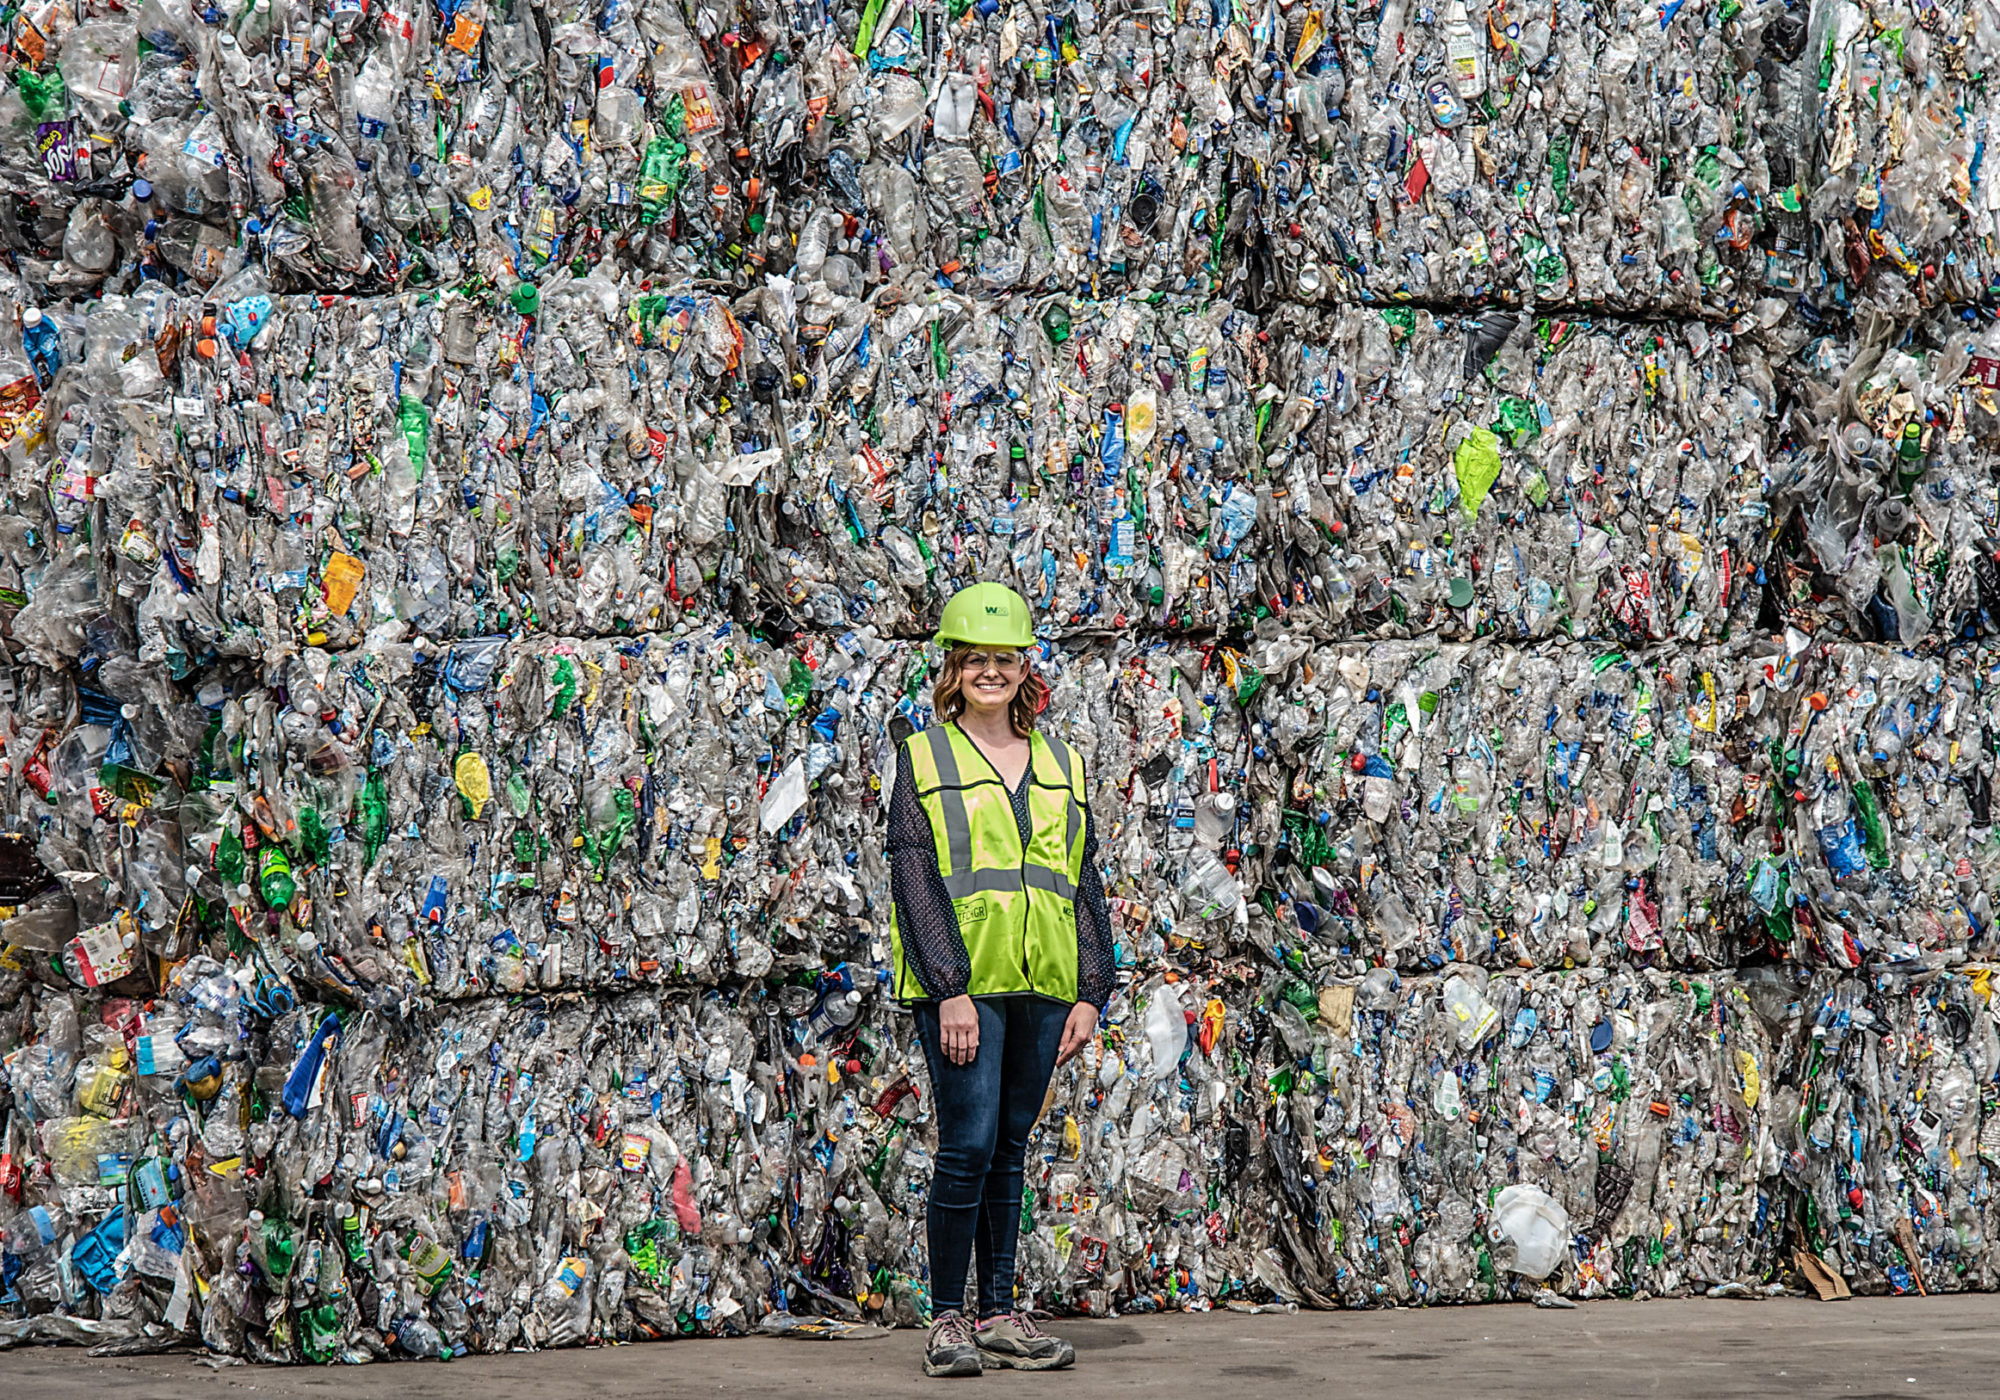 Erika Deyarmin-Young, spokesperson for Waste Management, stands with bales of plastic garbage at Greenstar Recycling on Neville Island in the Ohio river, around 20 miles south of Shell's cracker plant. CREDIT: Teake Zuidema/Nexus Media News